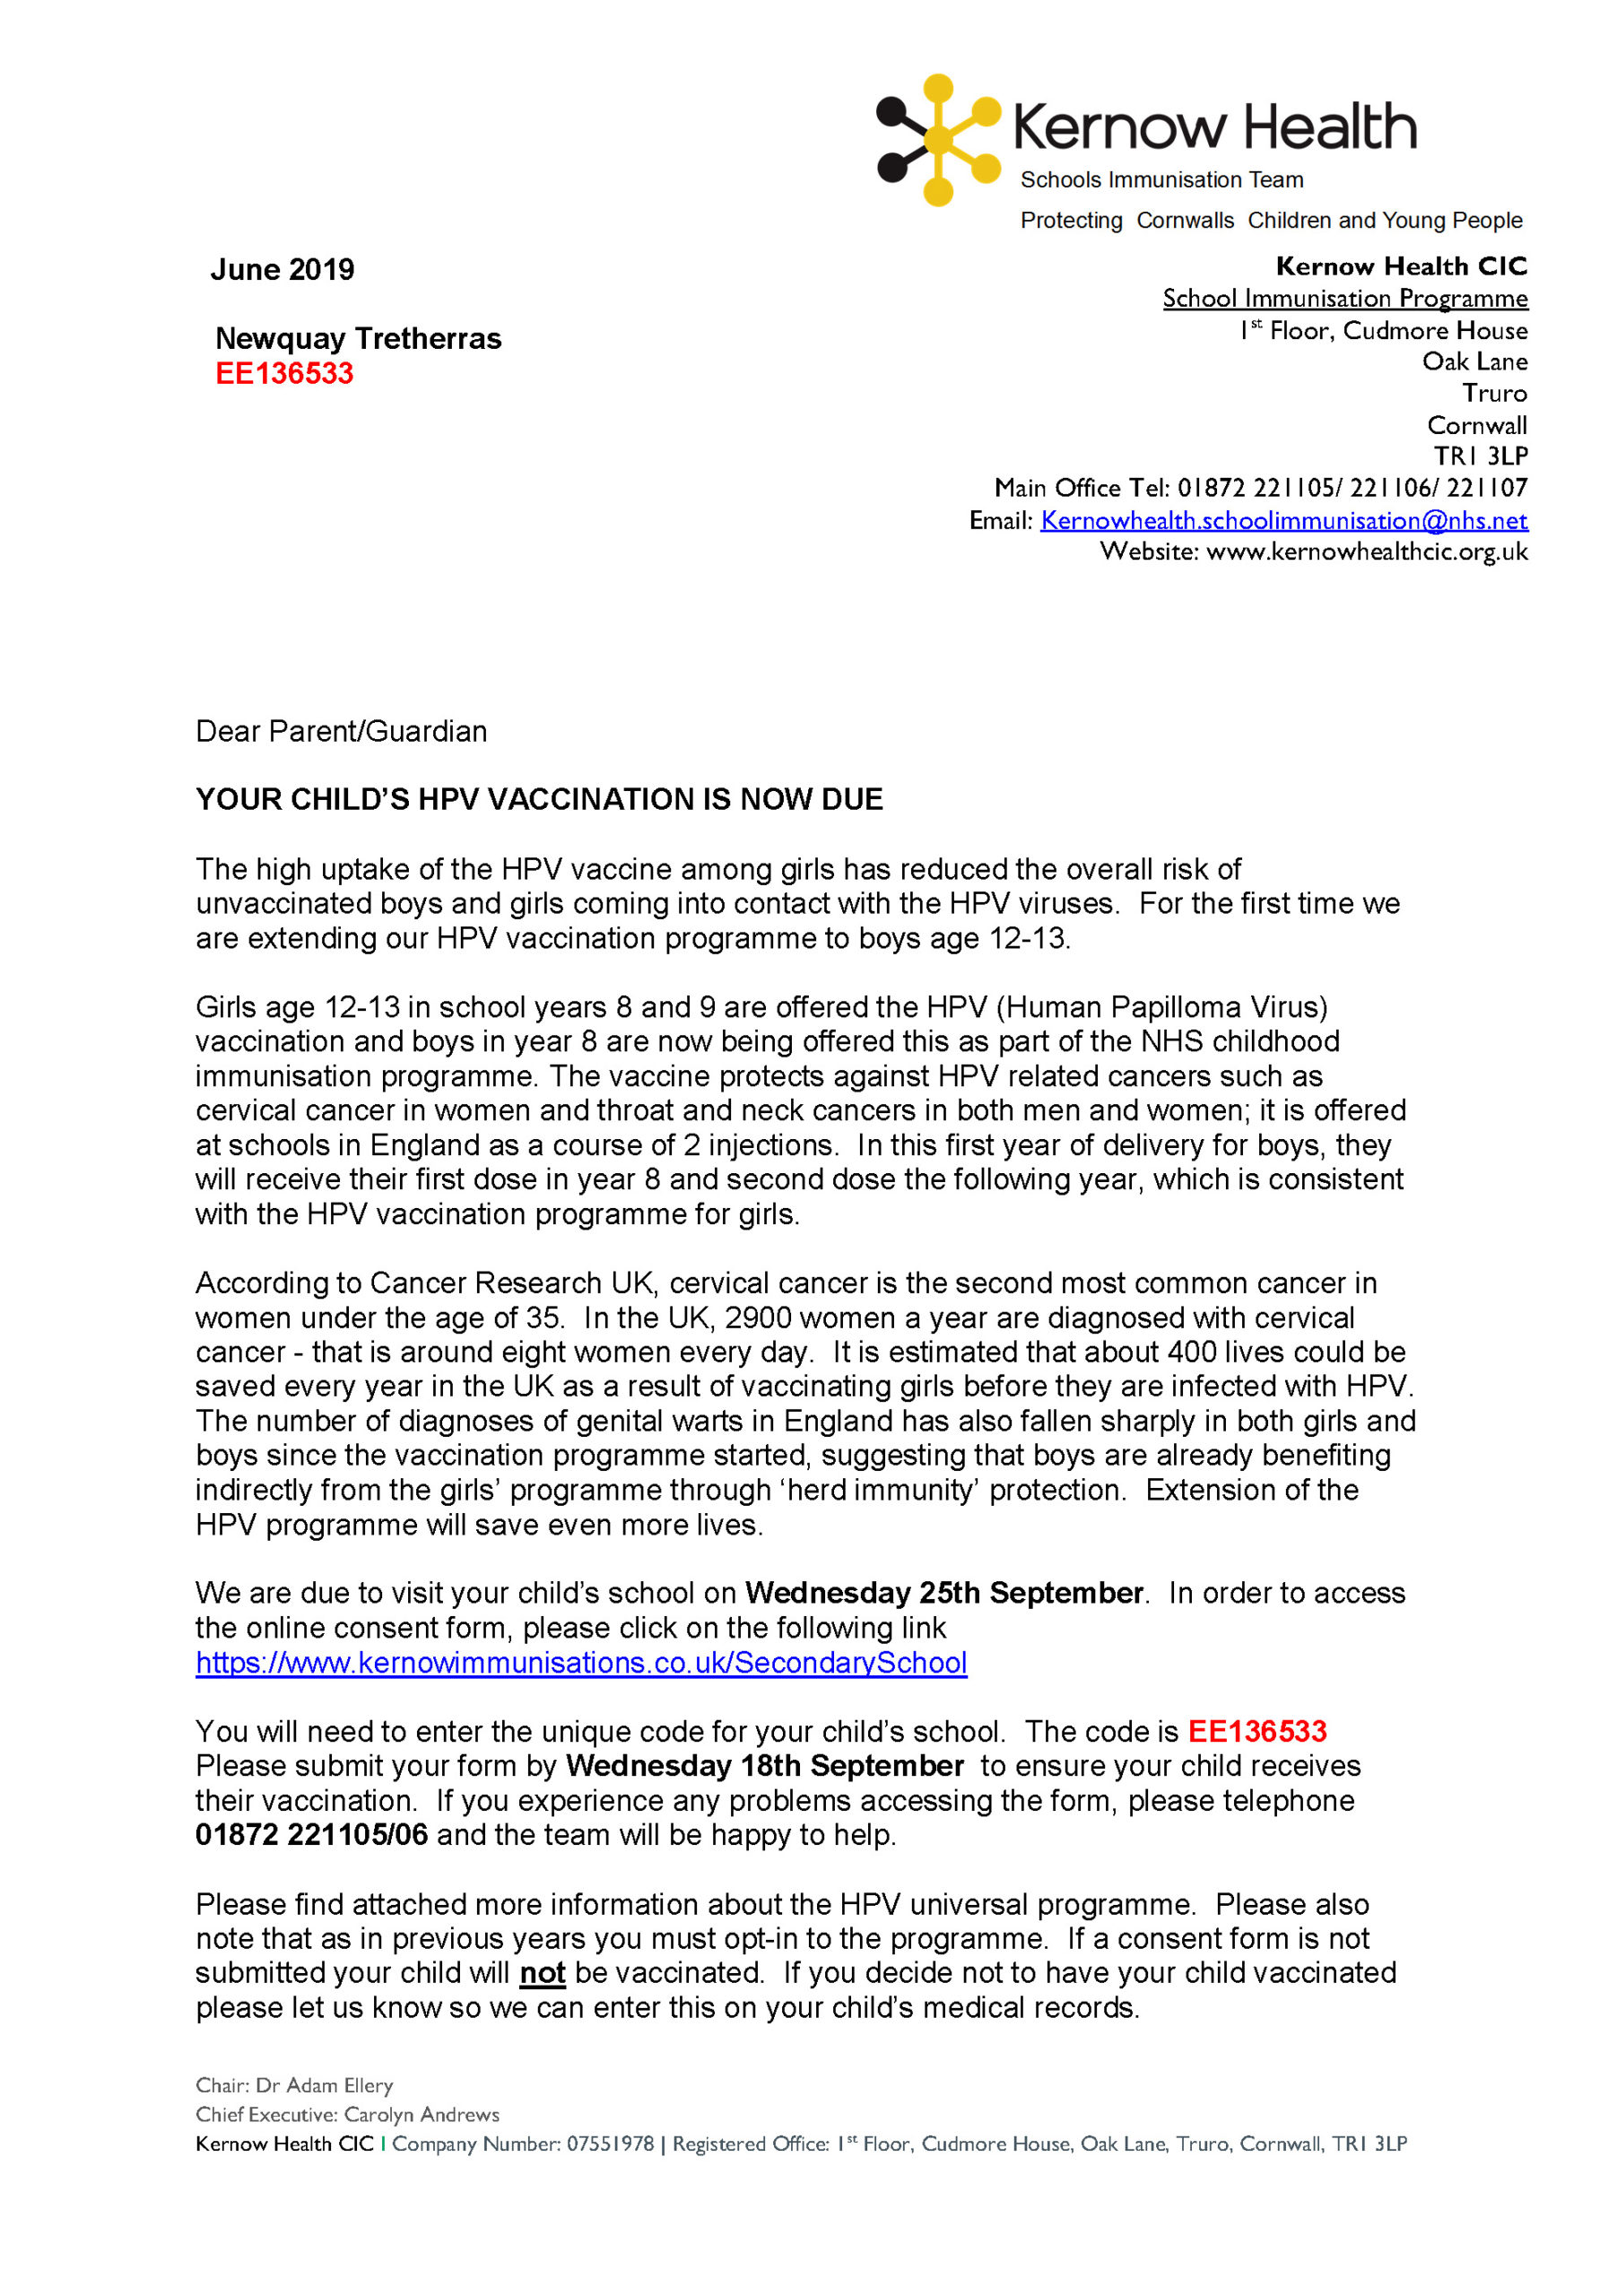 nhs hpv vaccination consent form